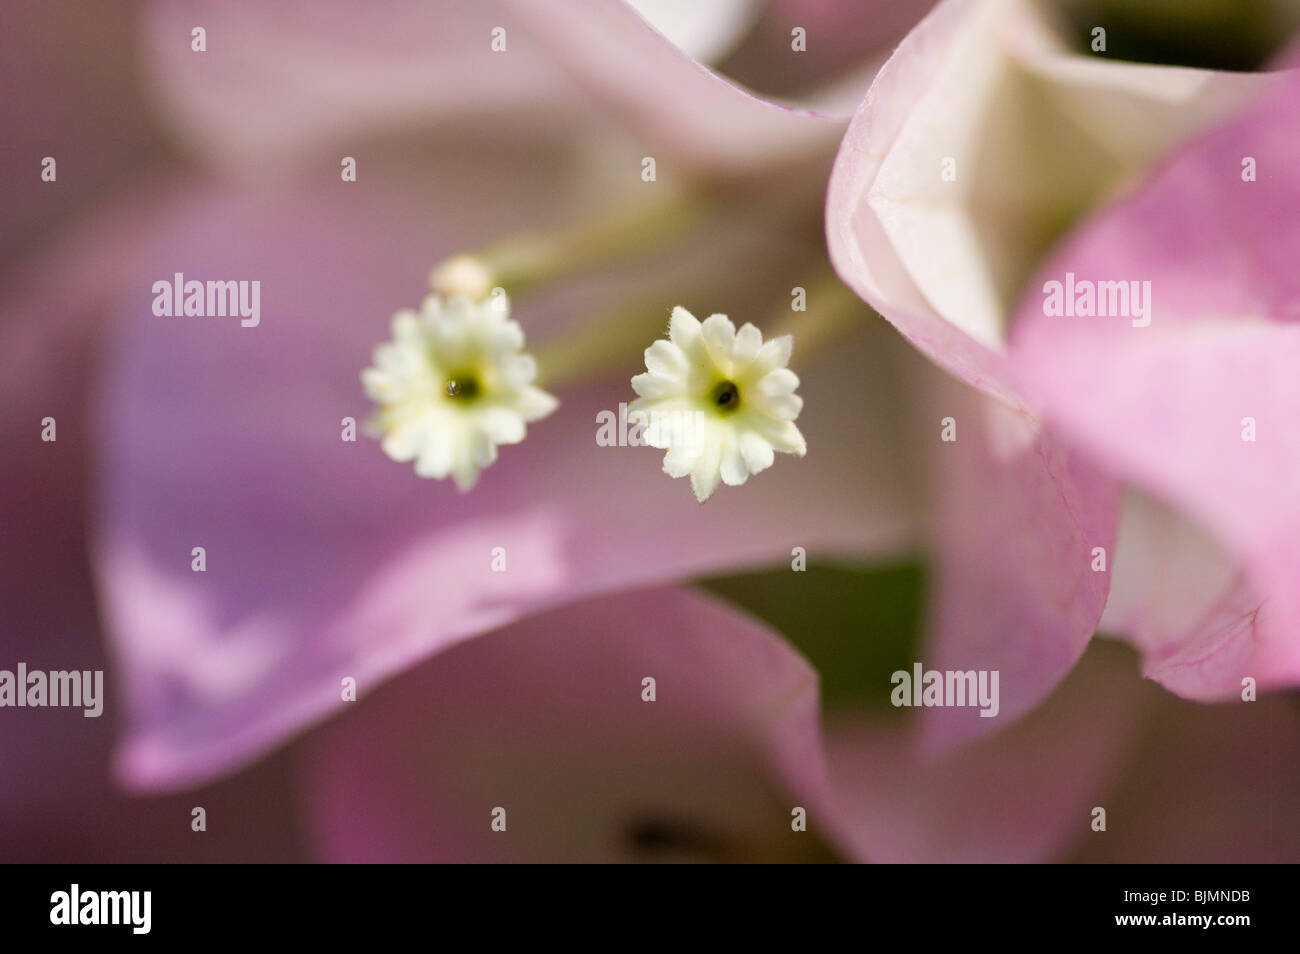 Bougainvillea soft focus pink flowers showing central section of flower. - Stock Image